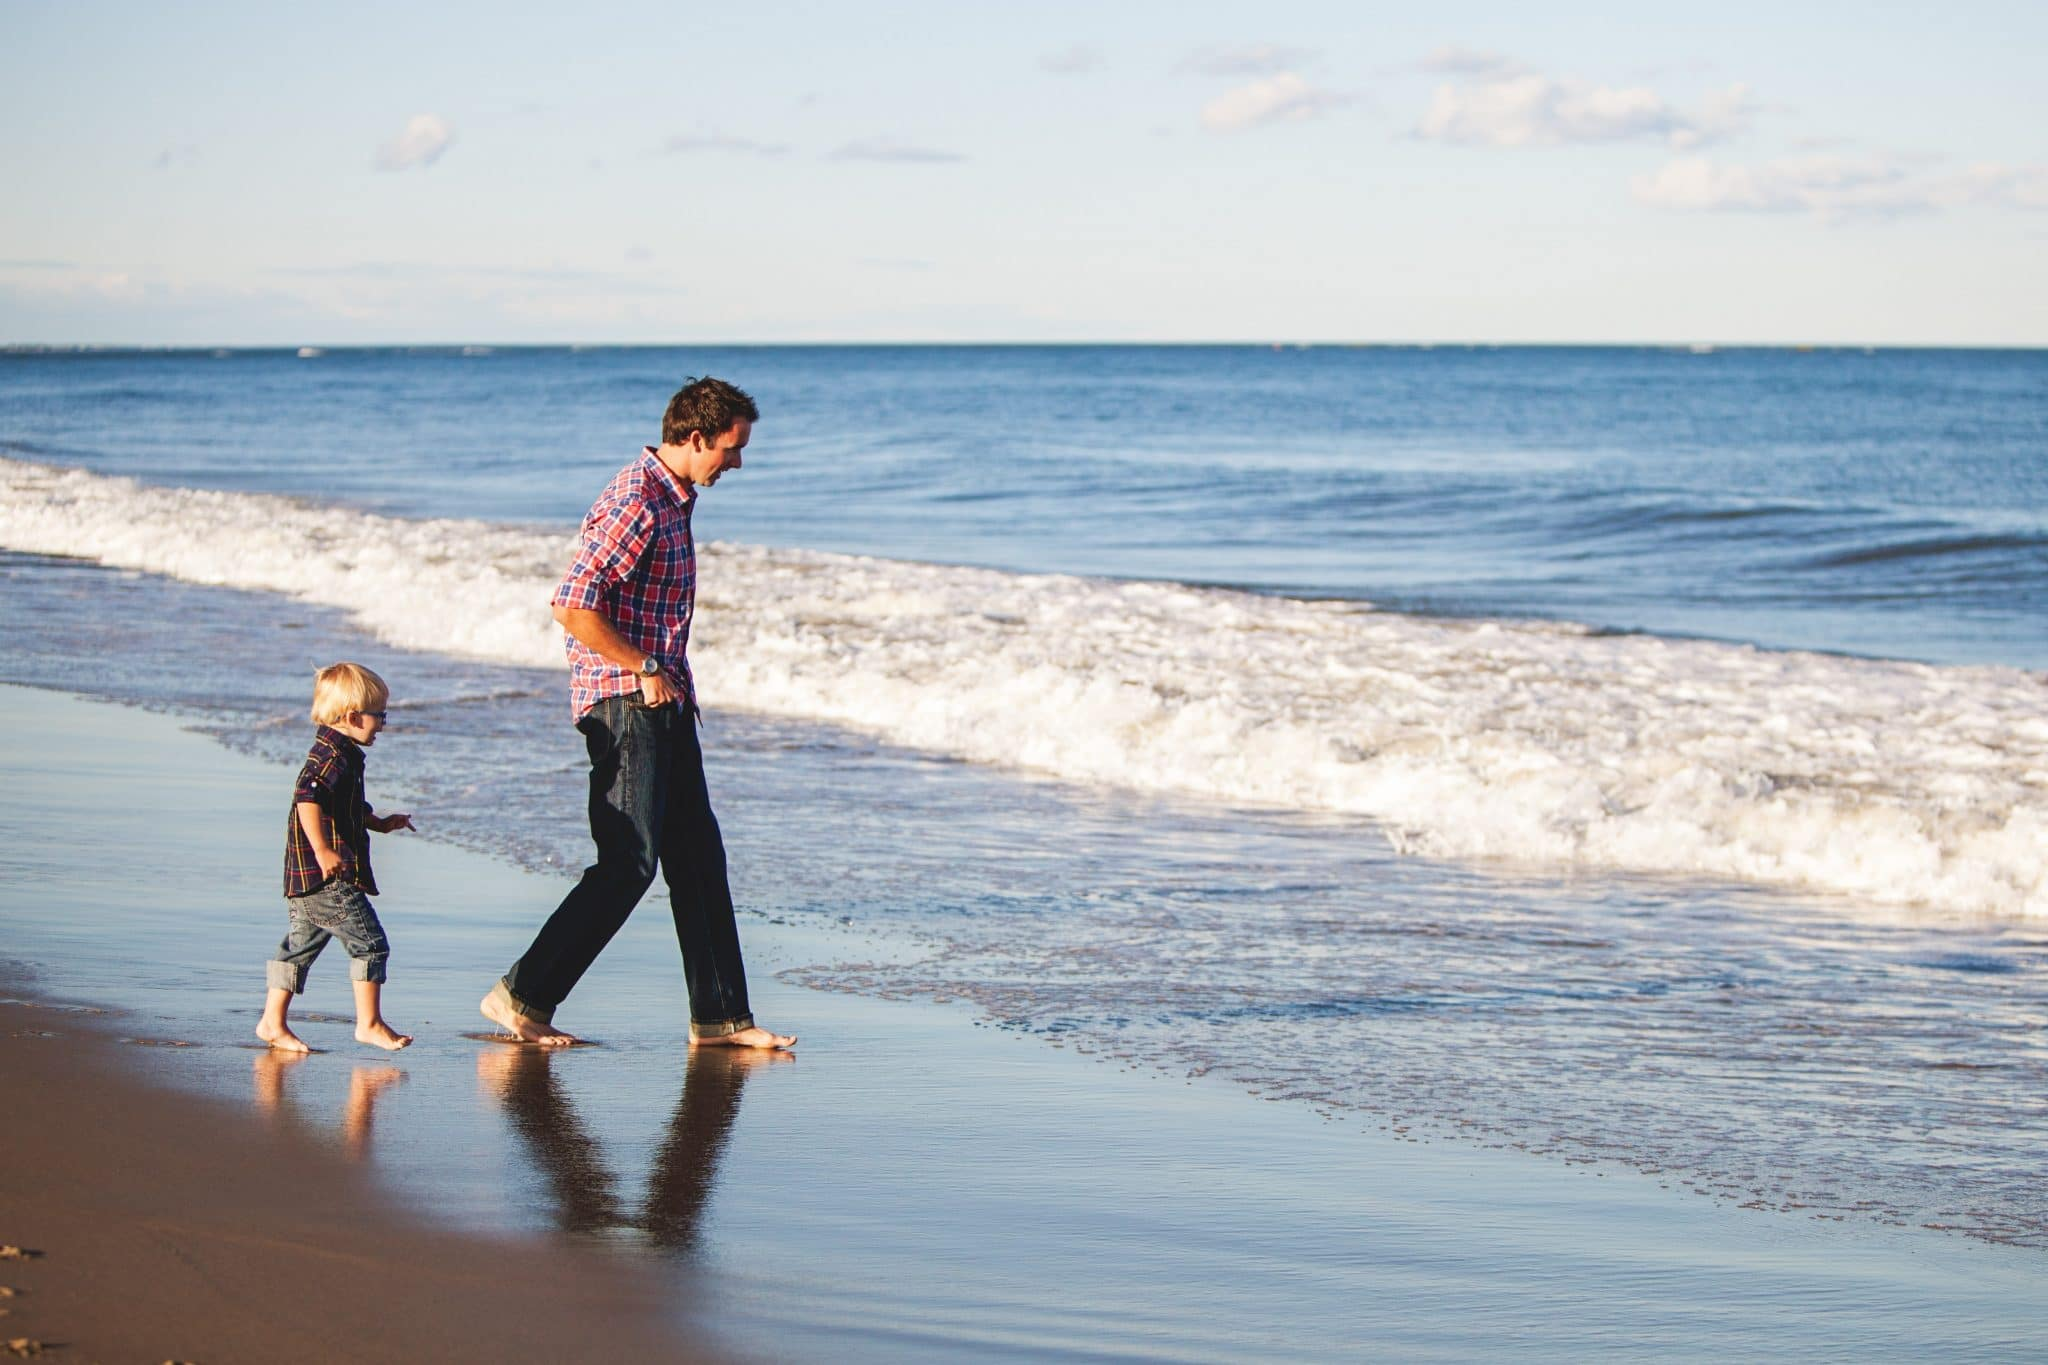 Ask Dr. Jann – Should I tell my son I'm not his biological father?